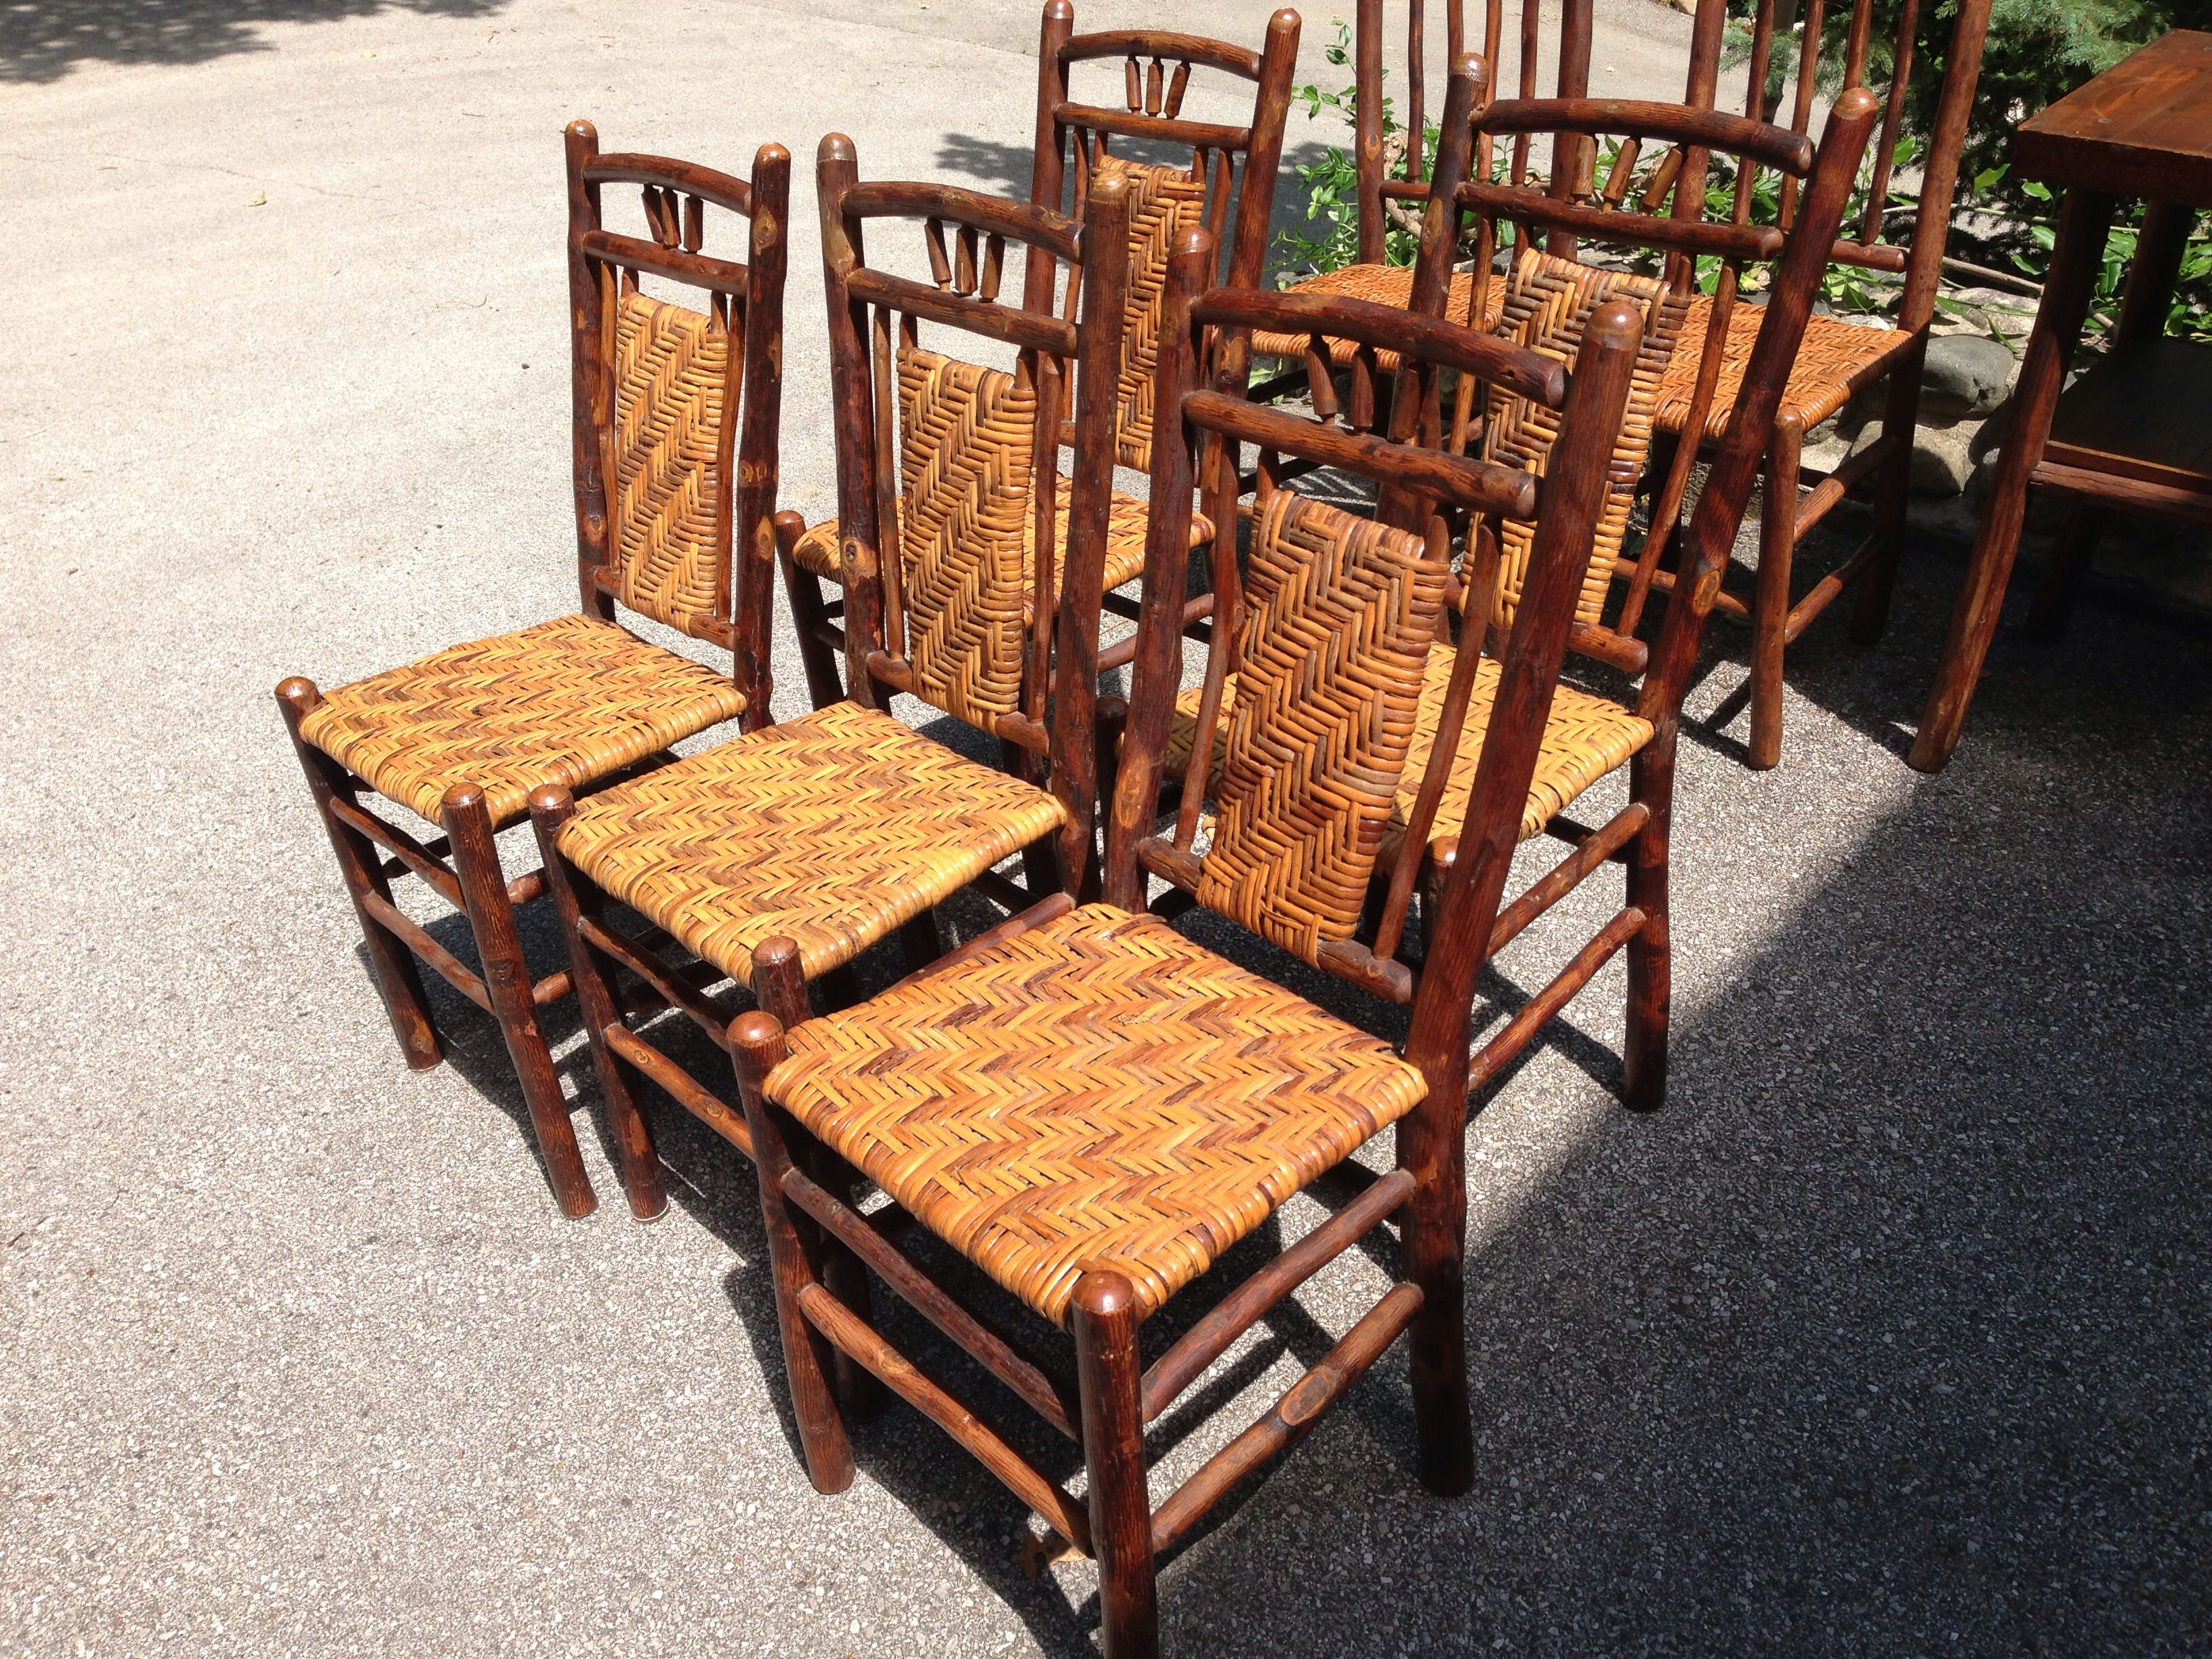 6 Old Hickory Dining Chairs Christibys Sold Old Hickory Furniture Hickory Furniture Old Hickory